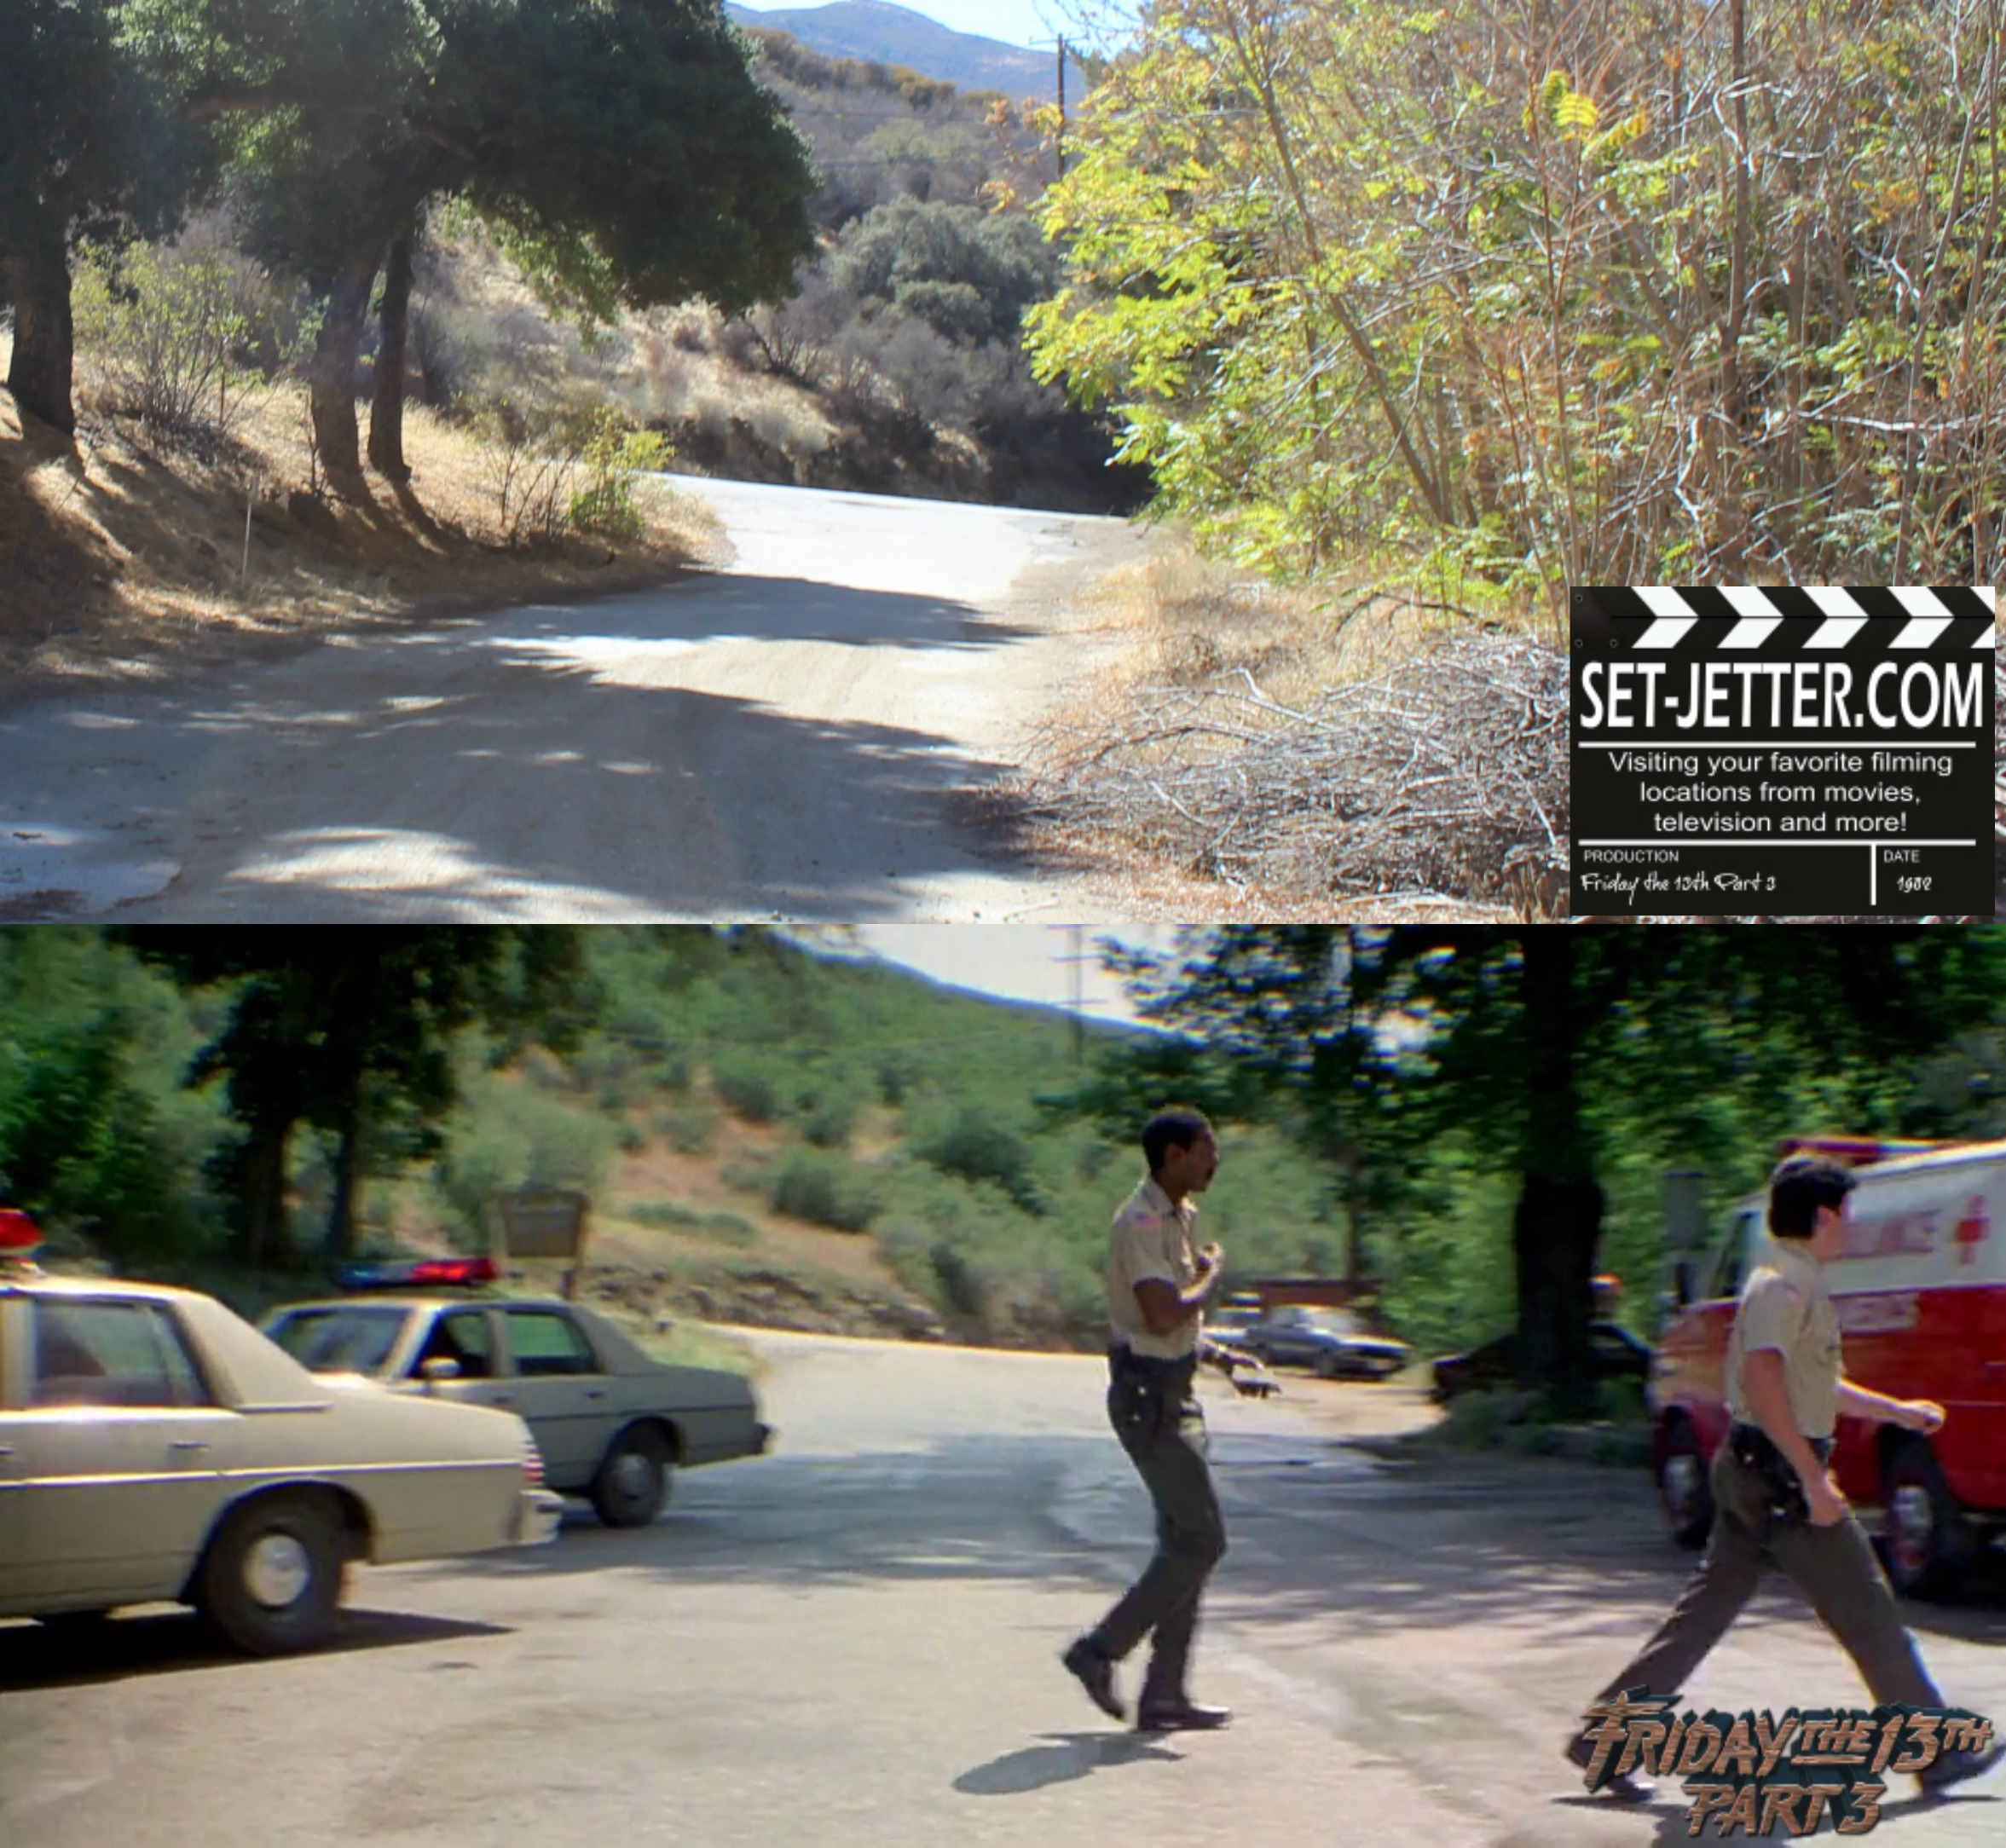 Friday the 13th Part 3 comparison 218.jpg